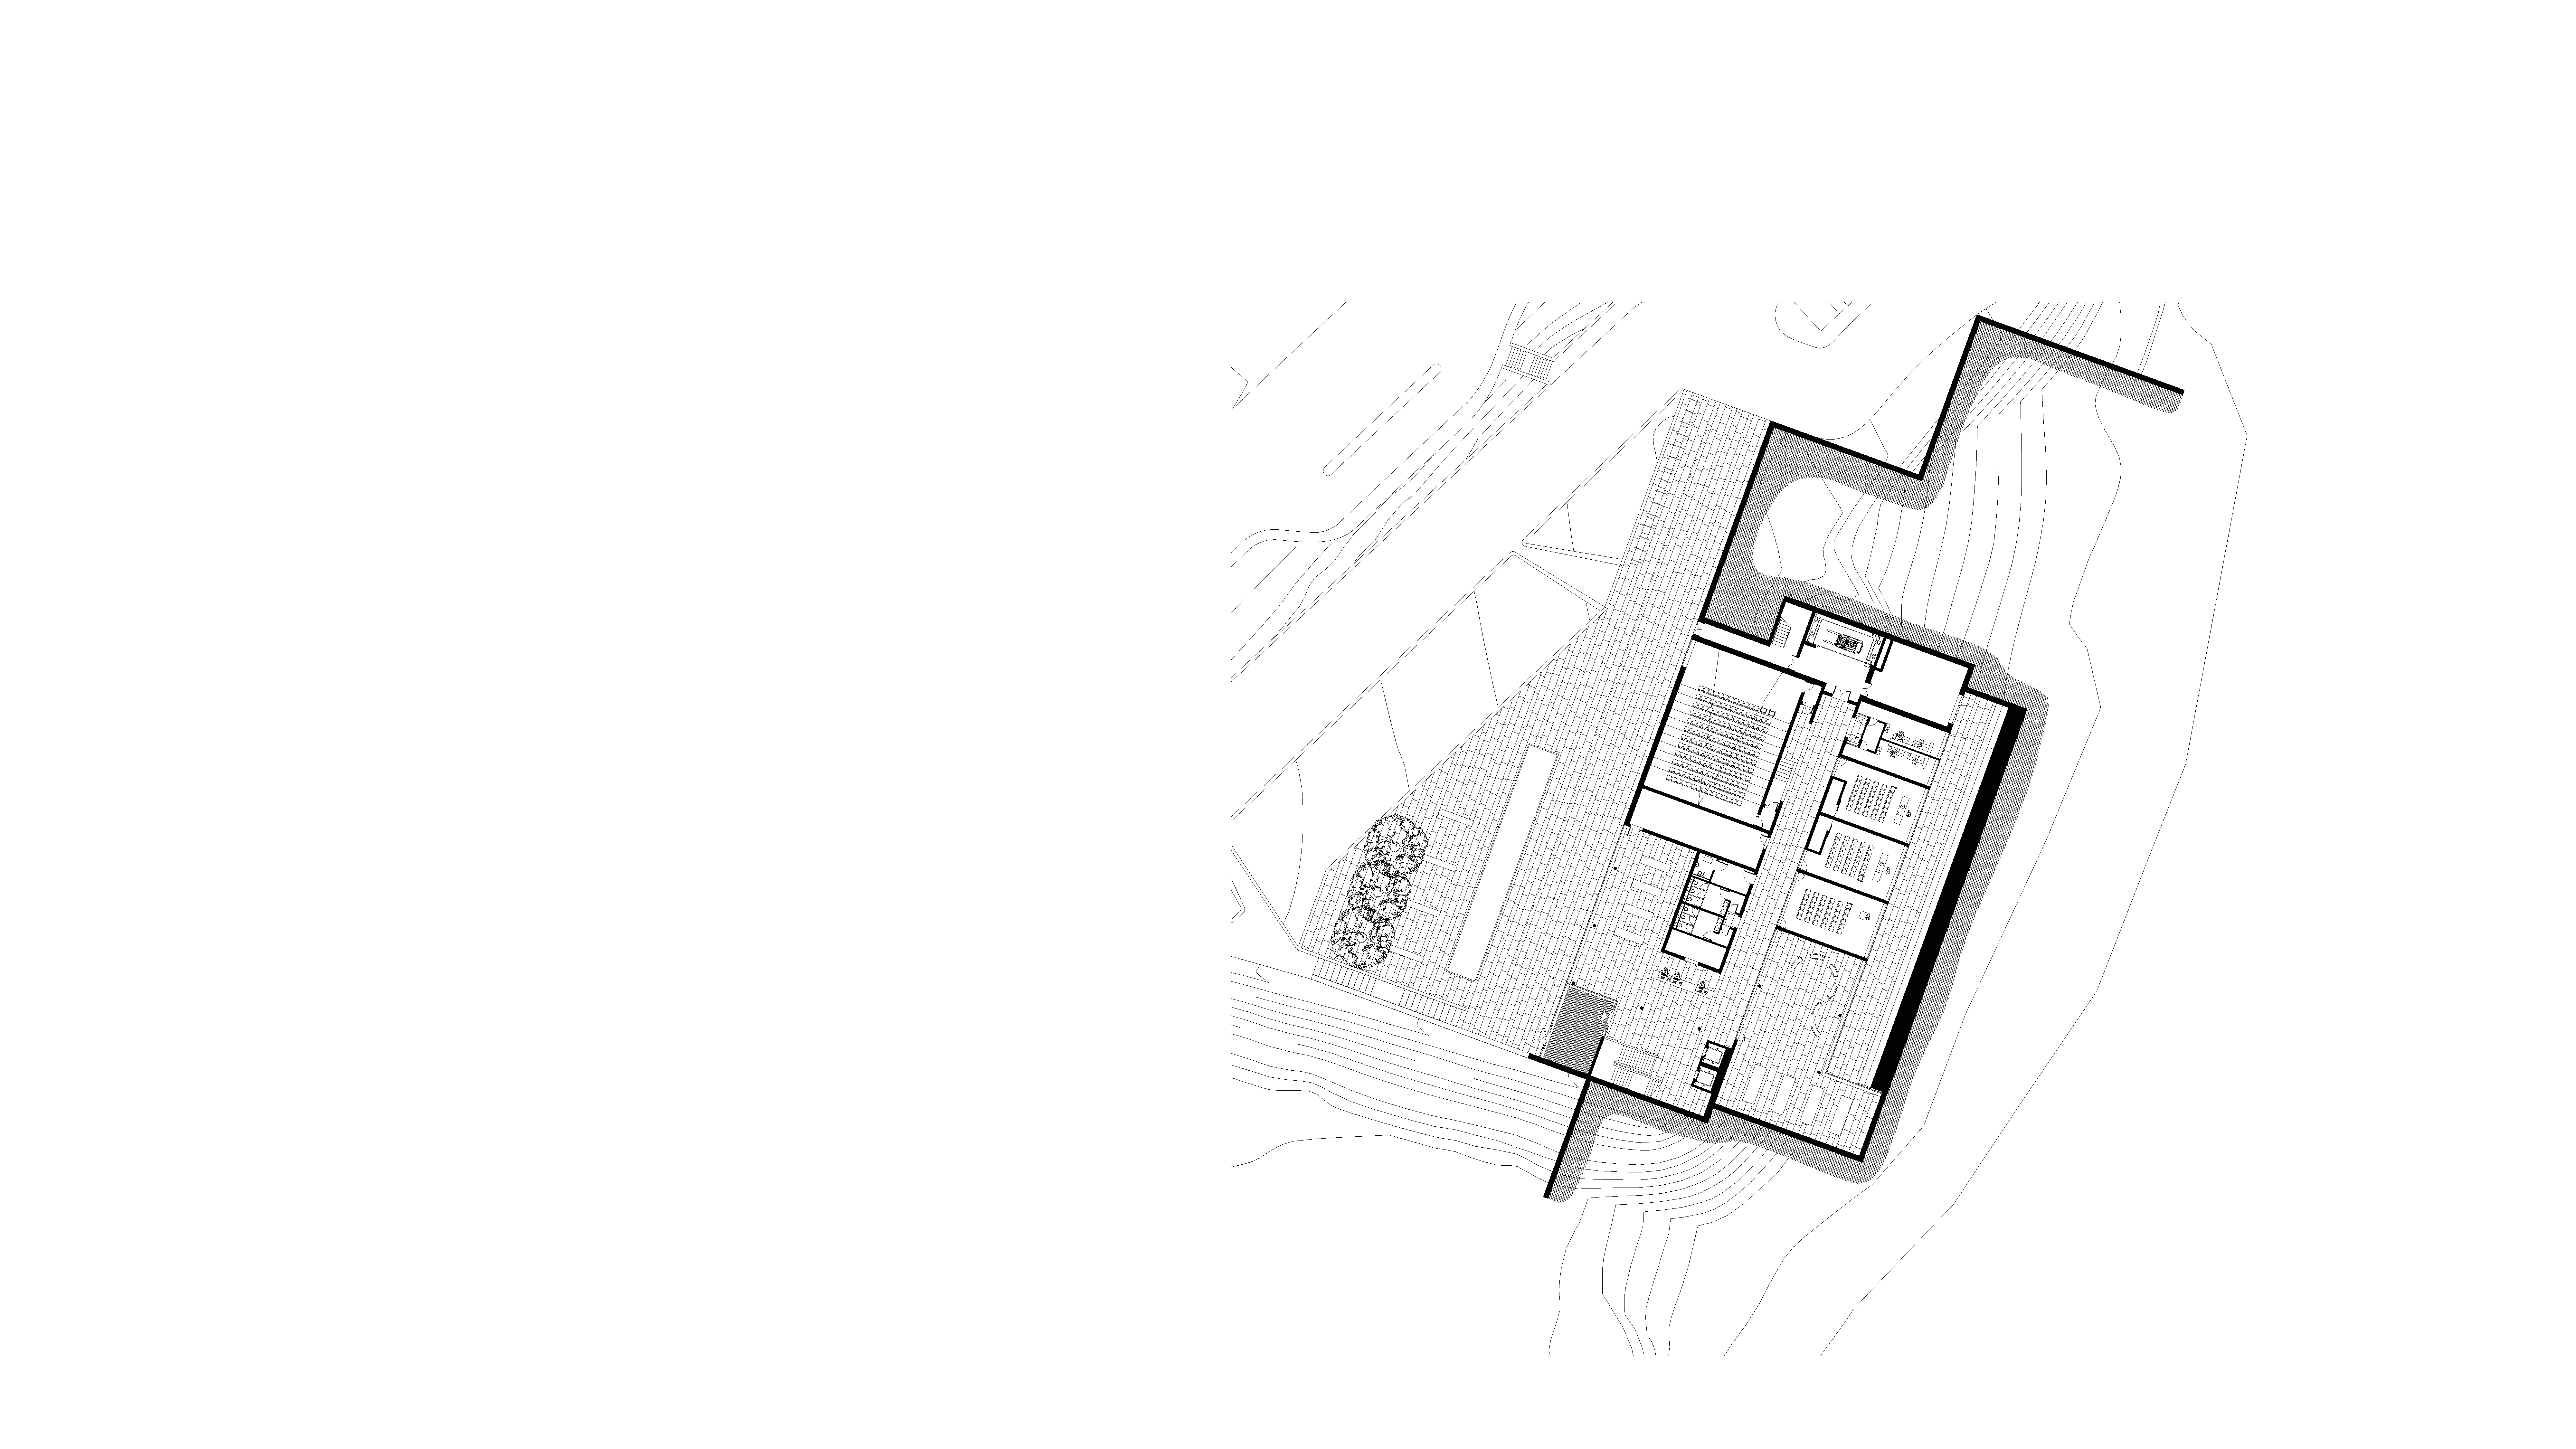 Ground floor plan of new museum by Keith Williams Architects for lwl-freilichtmuseum Detmold invited competition